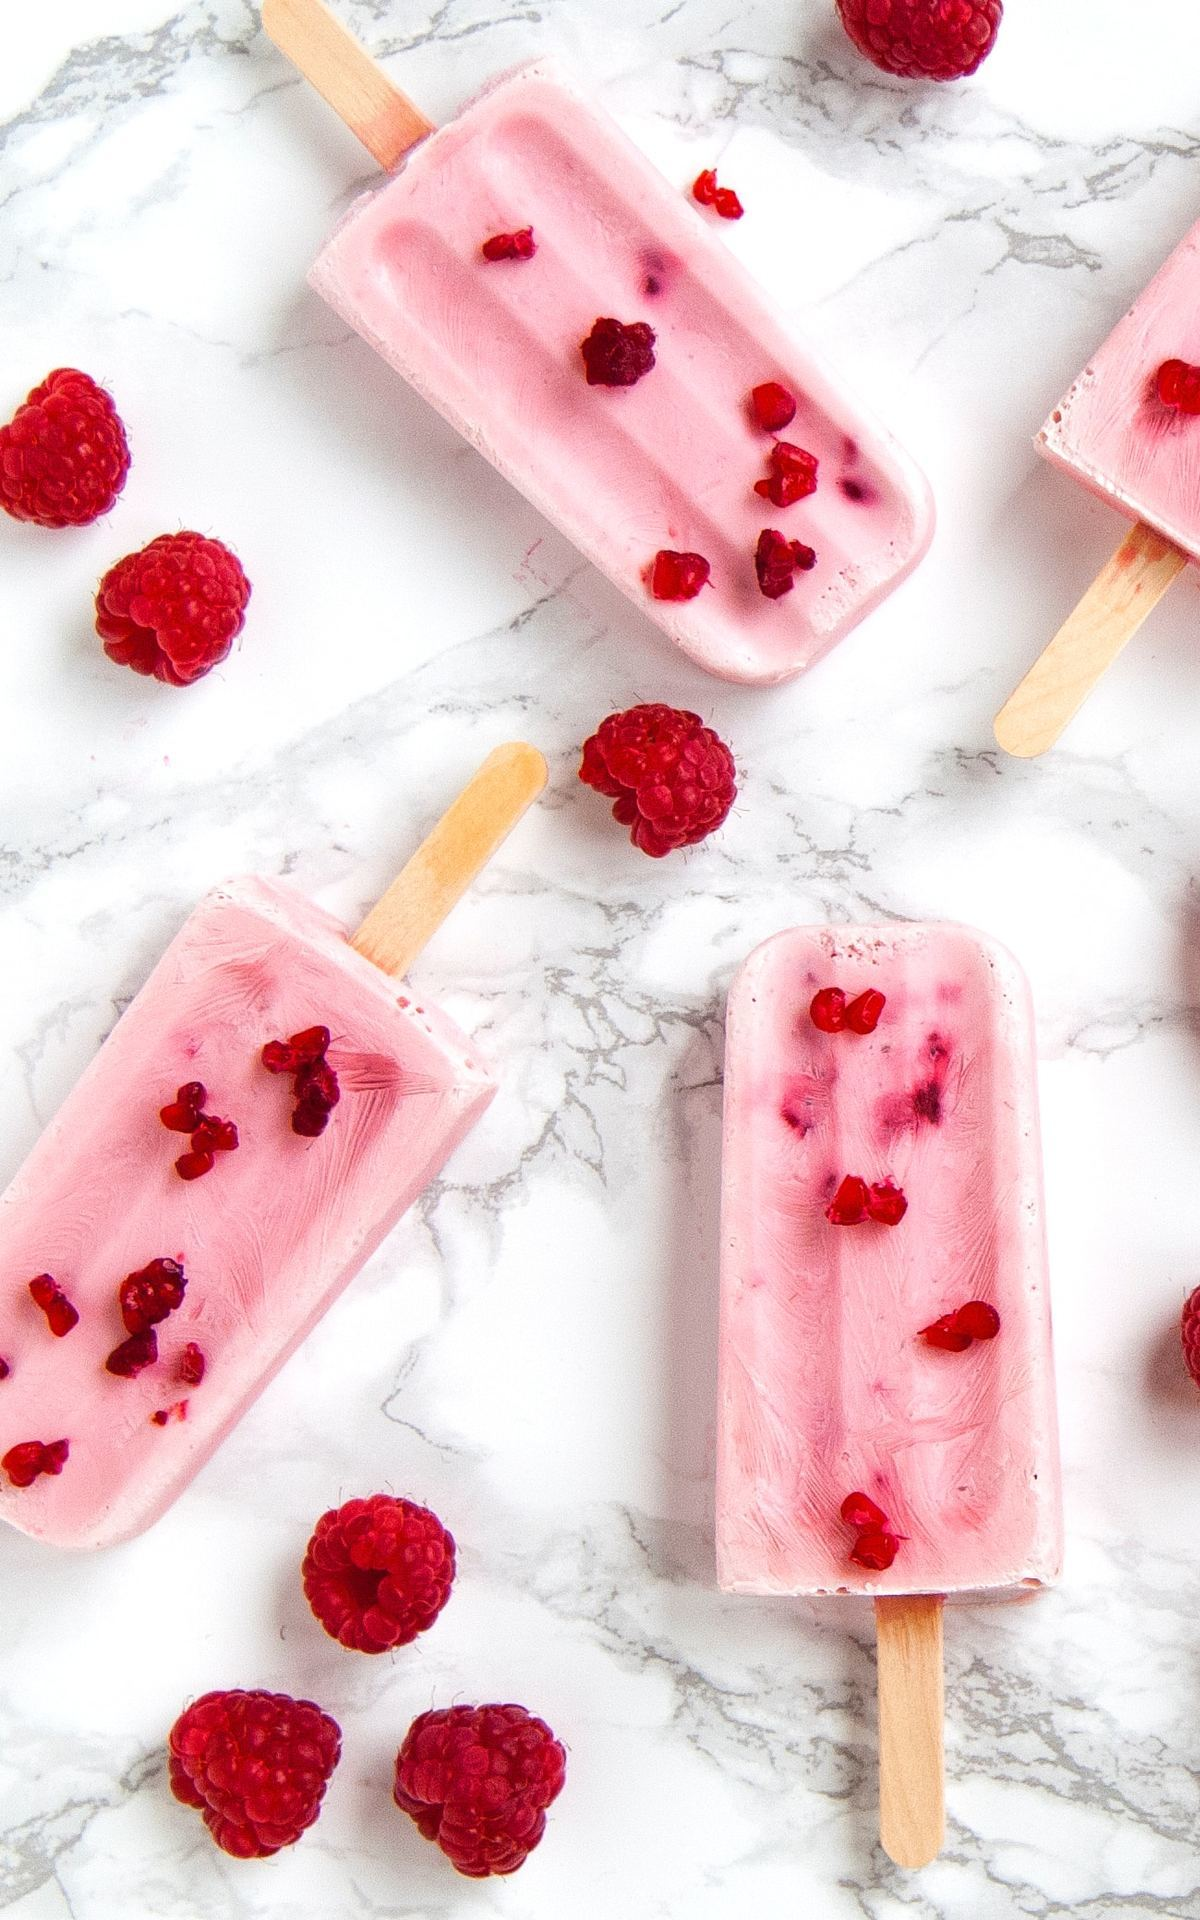 Raspberry ice-pops at La Roca Village